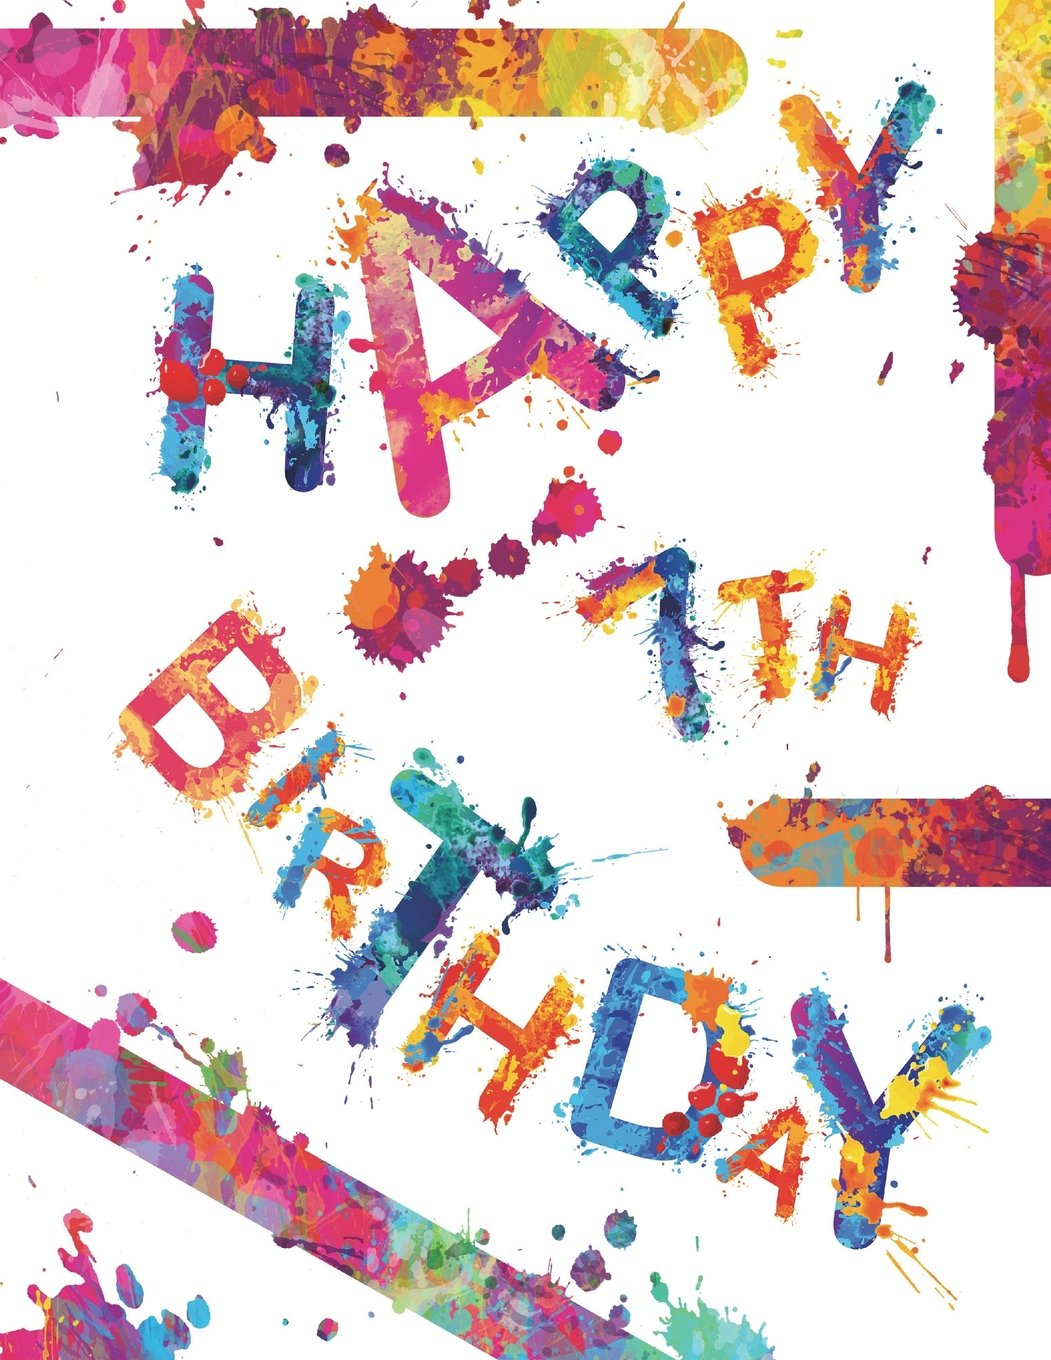 """Happy 7th Birthday: Fun Book to Use as School Notebook, Personal Journal, Personal Diary...105 Lined Pages, Birthday Gifts or Presents for 7 Year Old ... Grandson, Best Friend, Book Size 8 1/2"""" x 11"""" PDF"""